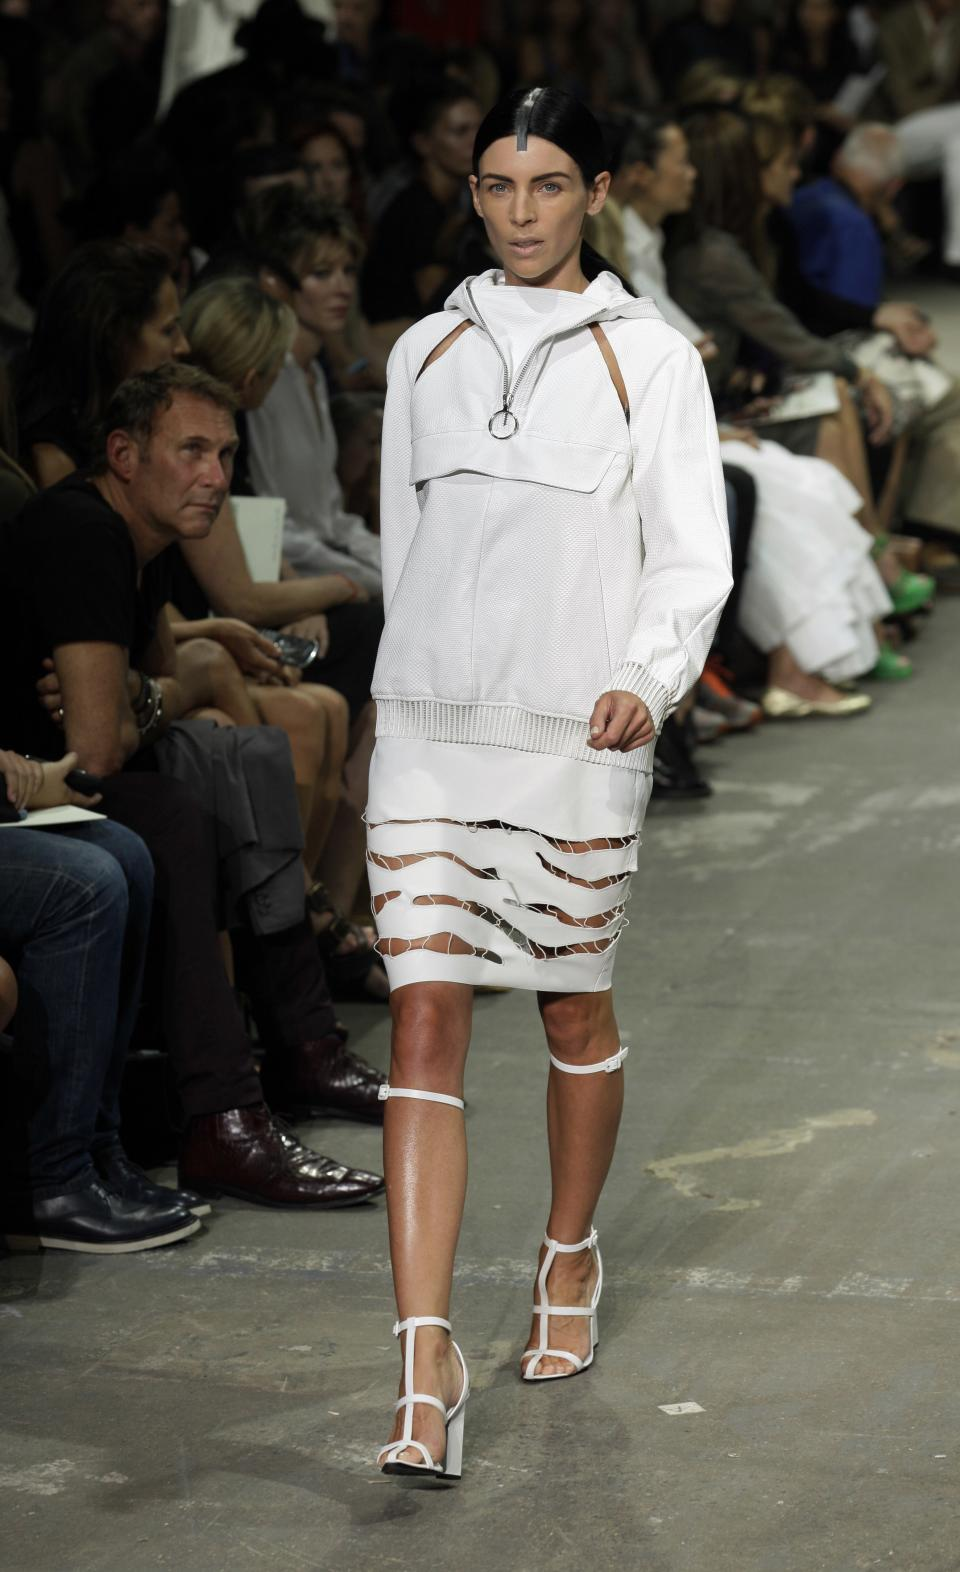 Liberty Ross models during the Alexander Wang Spring 2013 collection, during Fashion Week in New York,  Saturday, Sept. 8, 2012. (AP Photo/Richard Drew)